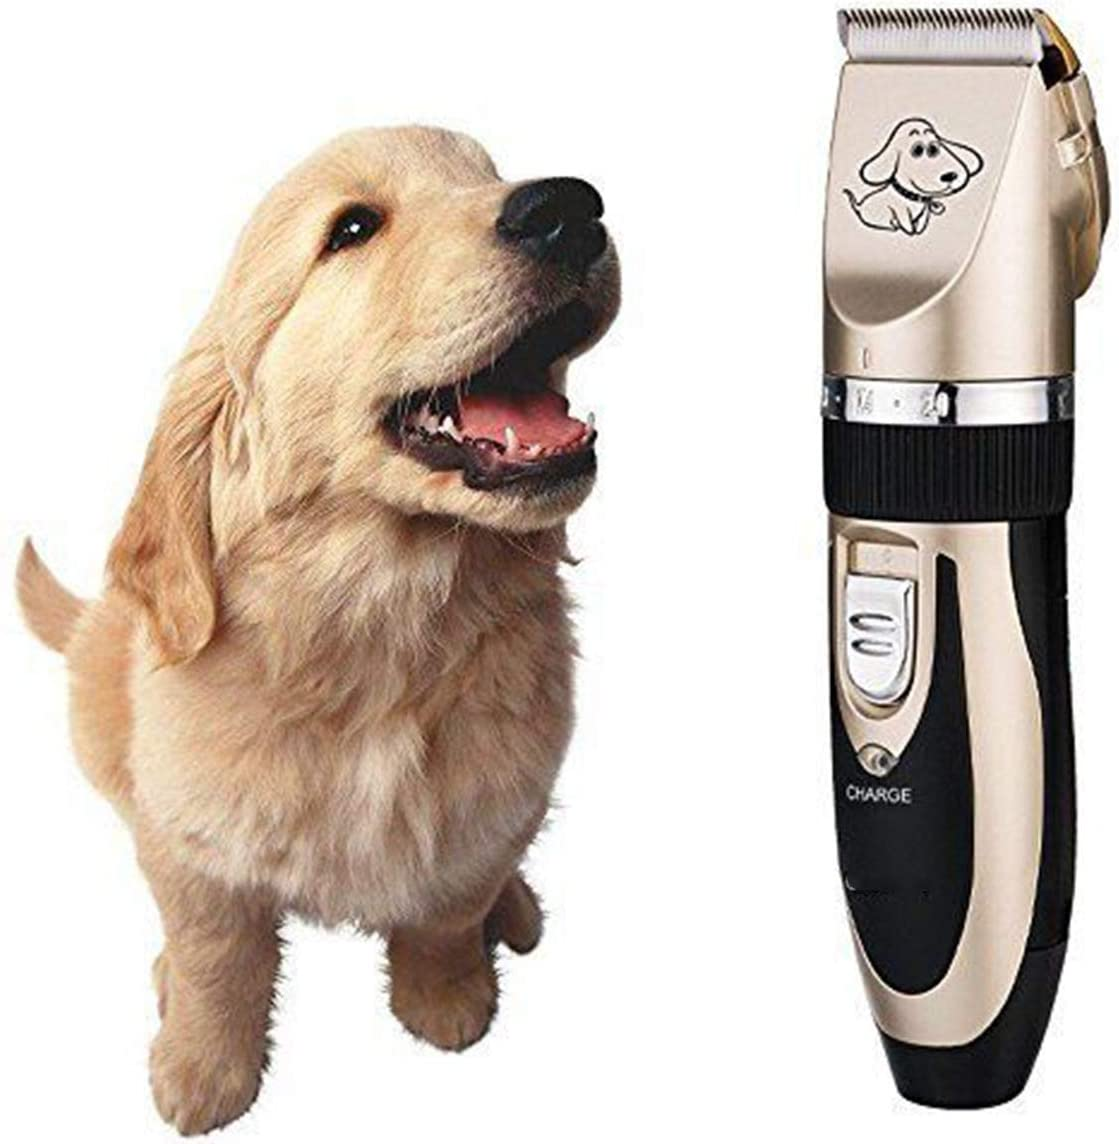 Petyoung Pet Grooming Clippers Low Noise,Cordless Electric Dog Cat Grooming Trimming Kit Professional Clipper Kits US Plug